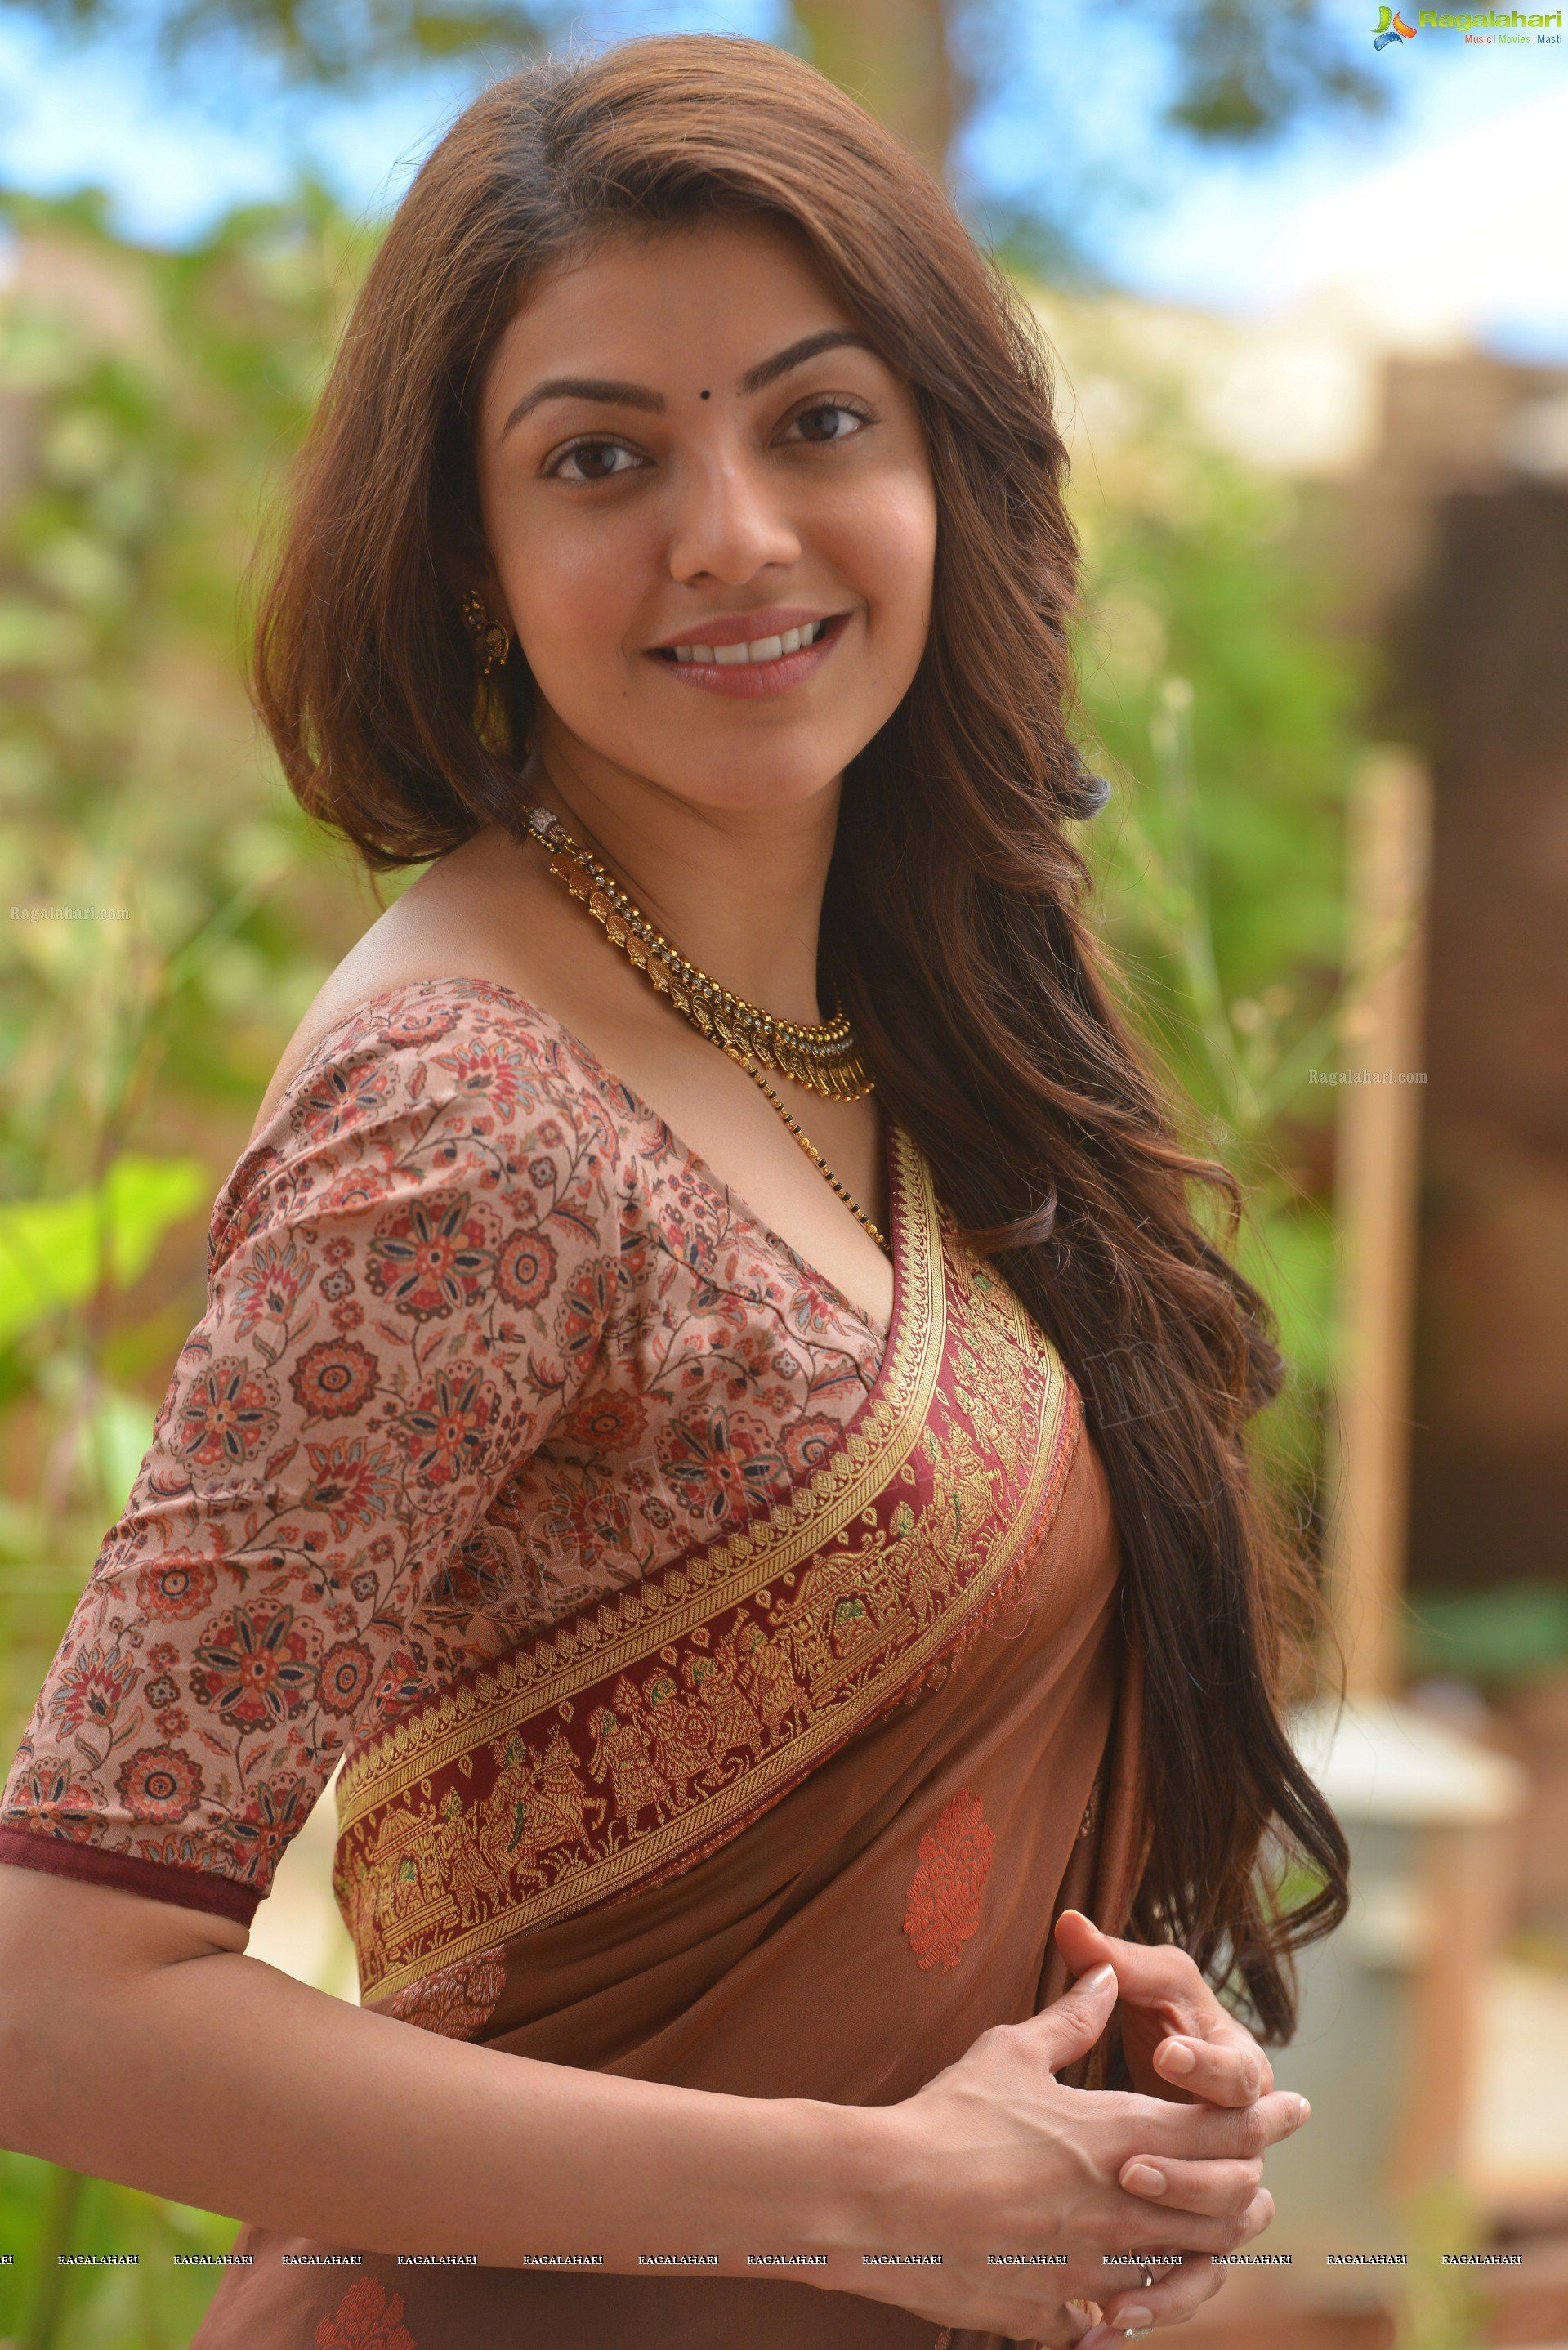 High Quality Bollywood Celebrity Pictures: Singham beauty